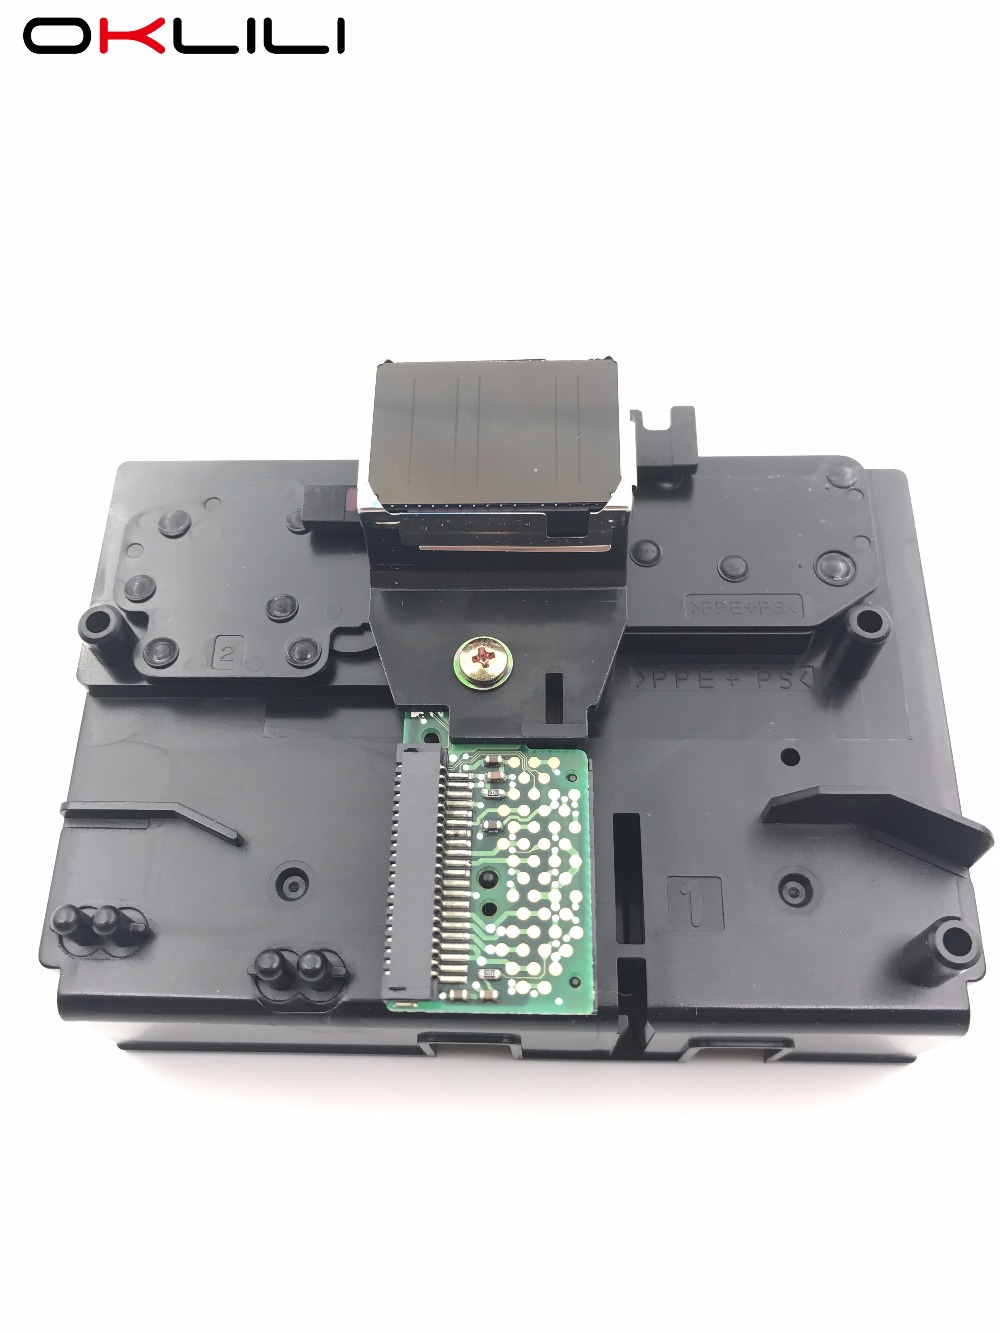 F072000 Printhead Printer Head Print Head for Epson Stylus Color 900 DX3 900G 900N 980 980N for Roland DX3 FJ500 FJ600 4 color print head 990a4 printhead for brother dcp350c dcp385c dcp585cw mfc 5490 255 495 795 490 290 250 790 printer head